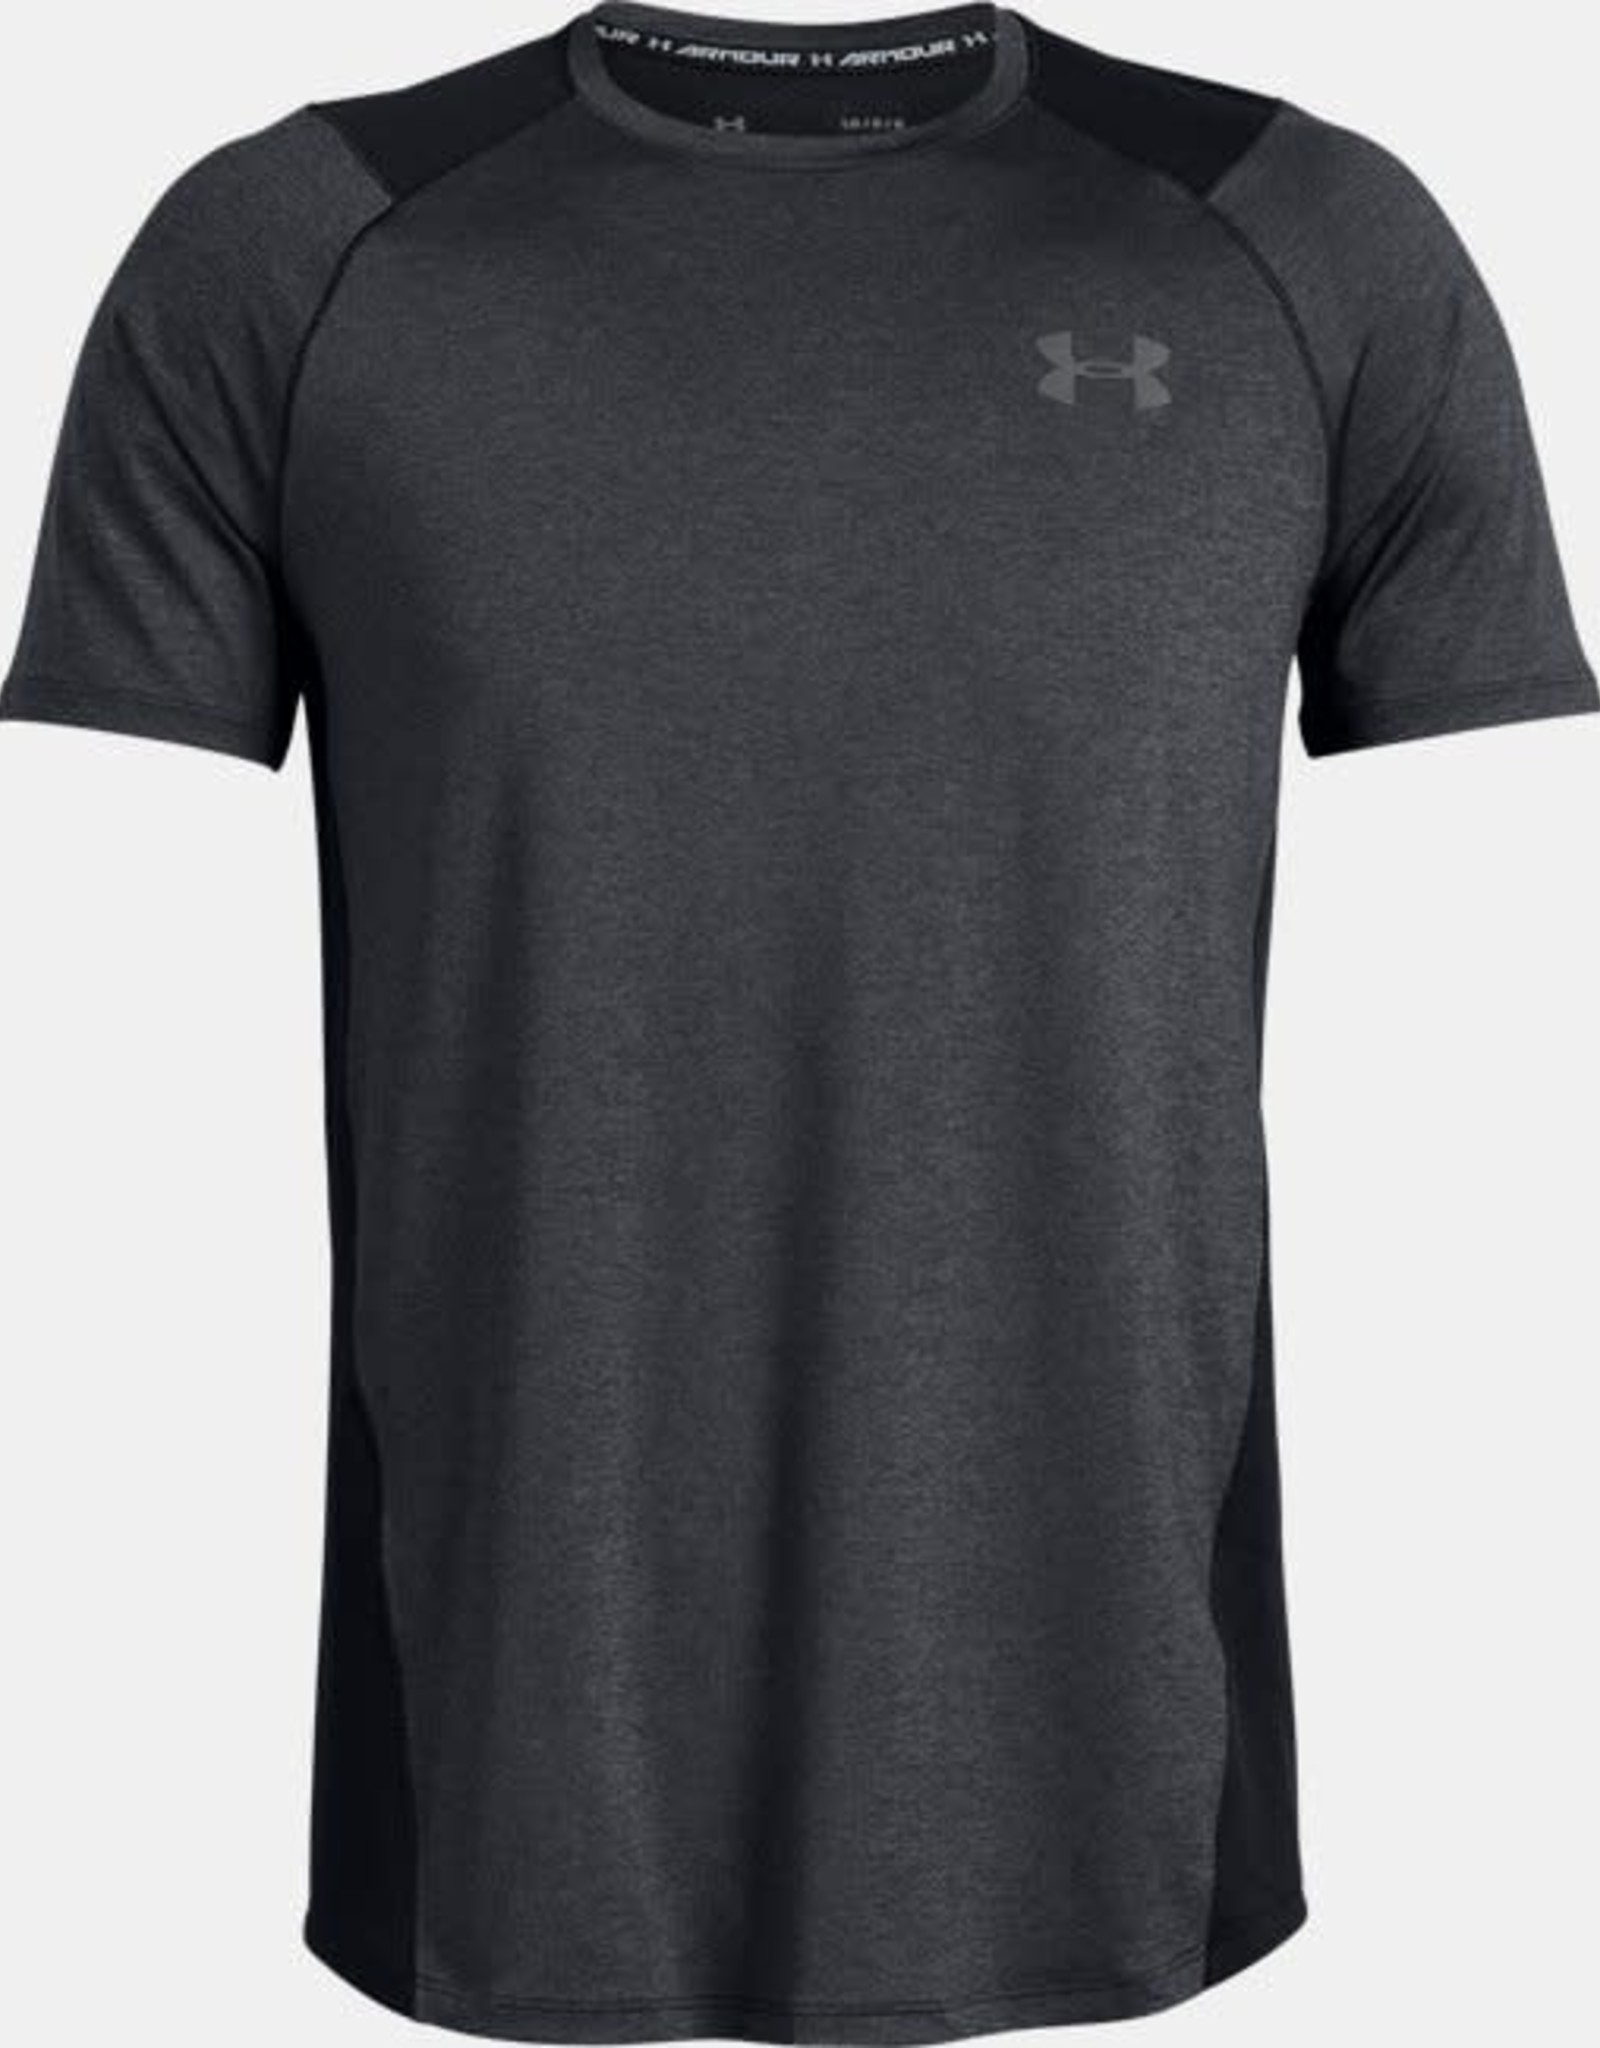 Under Armour UA MK1 tee - anthracite